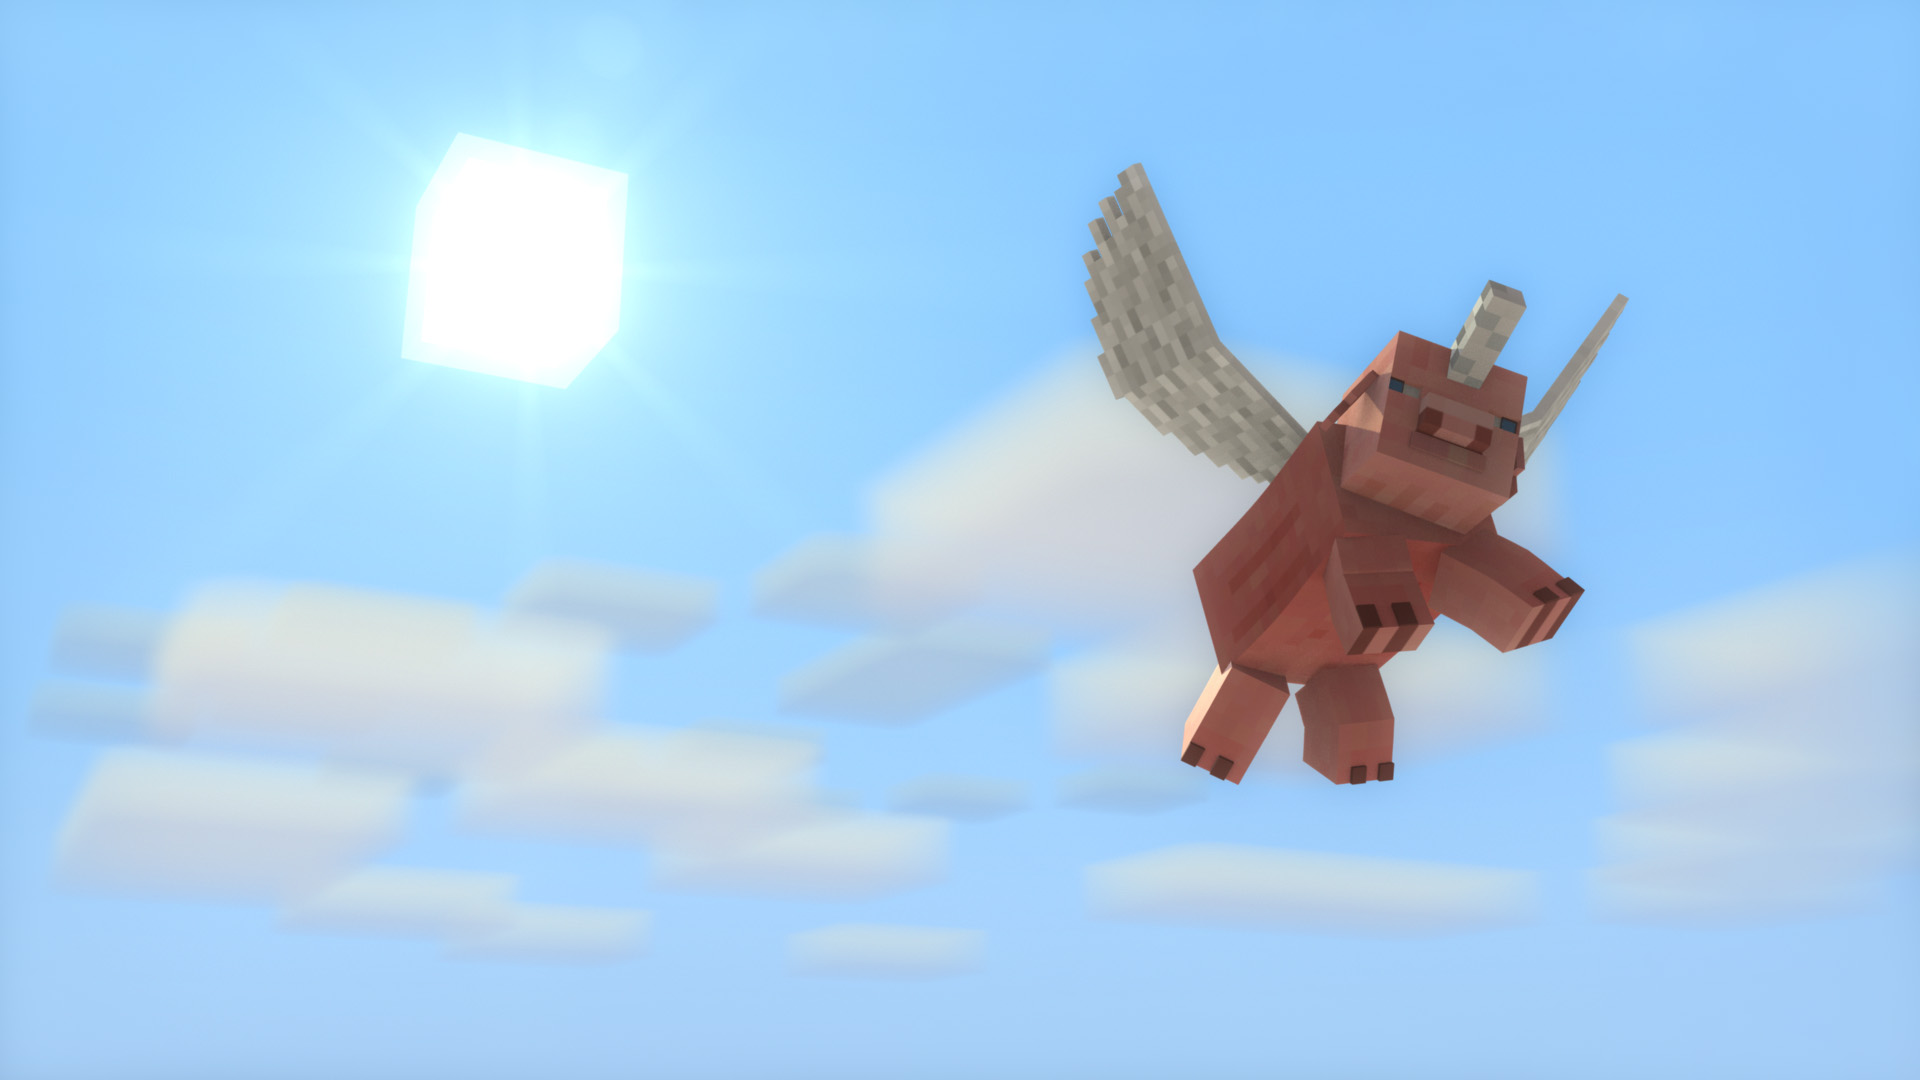 minecraft pig wallpapers download - photo #19